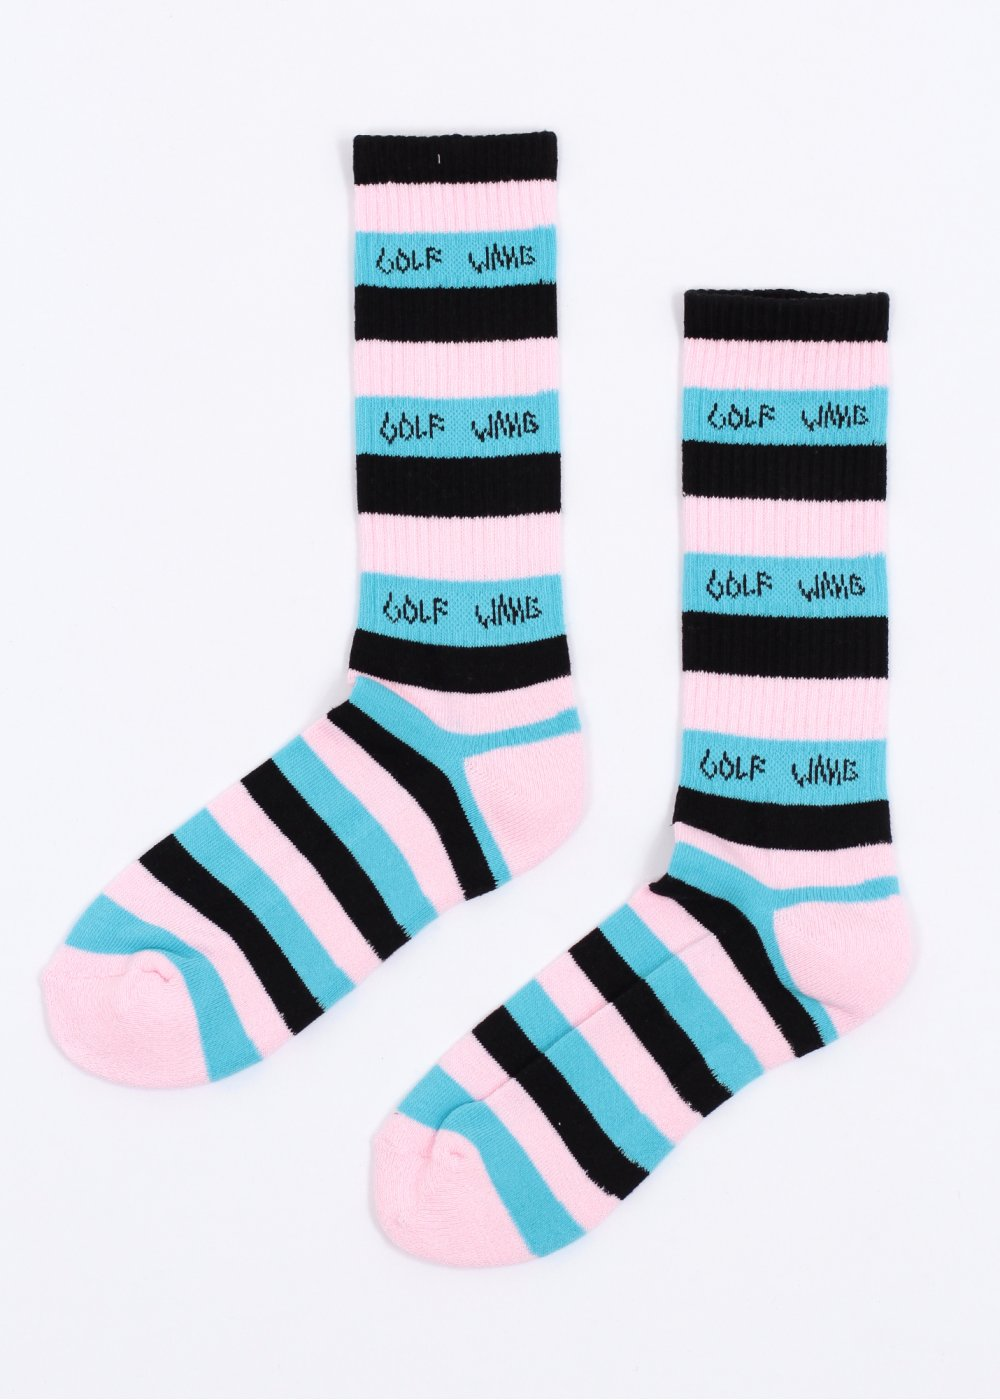 9b49975d1e5a Odd Future Golf Wang Striped Sock - Pink